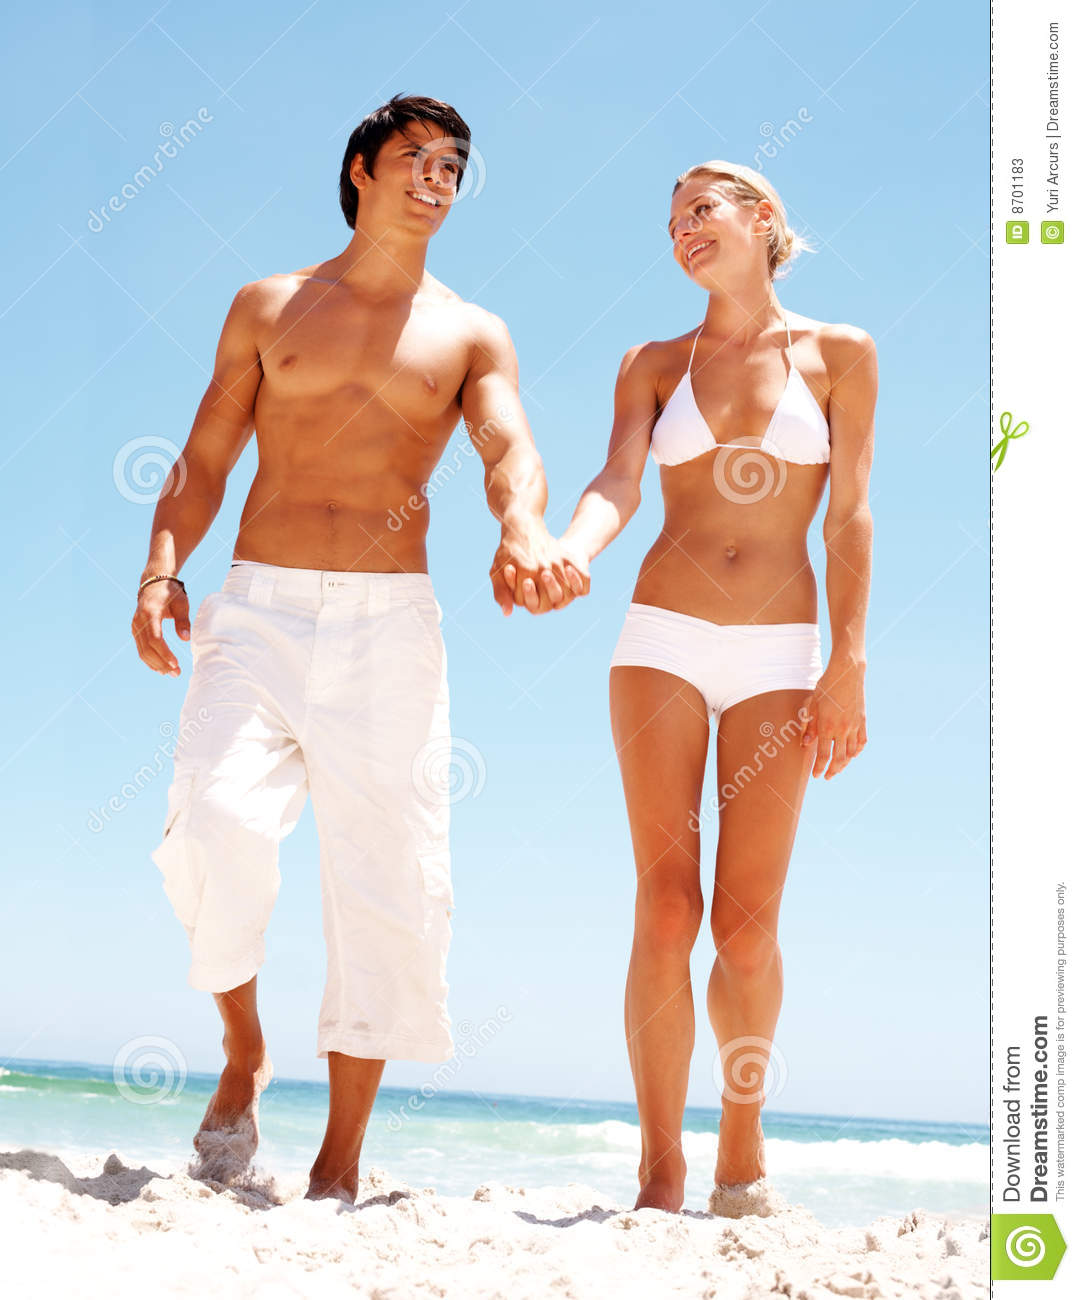 Couple At The Beach Stock Image Image Of Caucasian: Couple Holding Hands And Walking On The Beach Stock Image